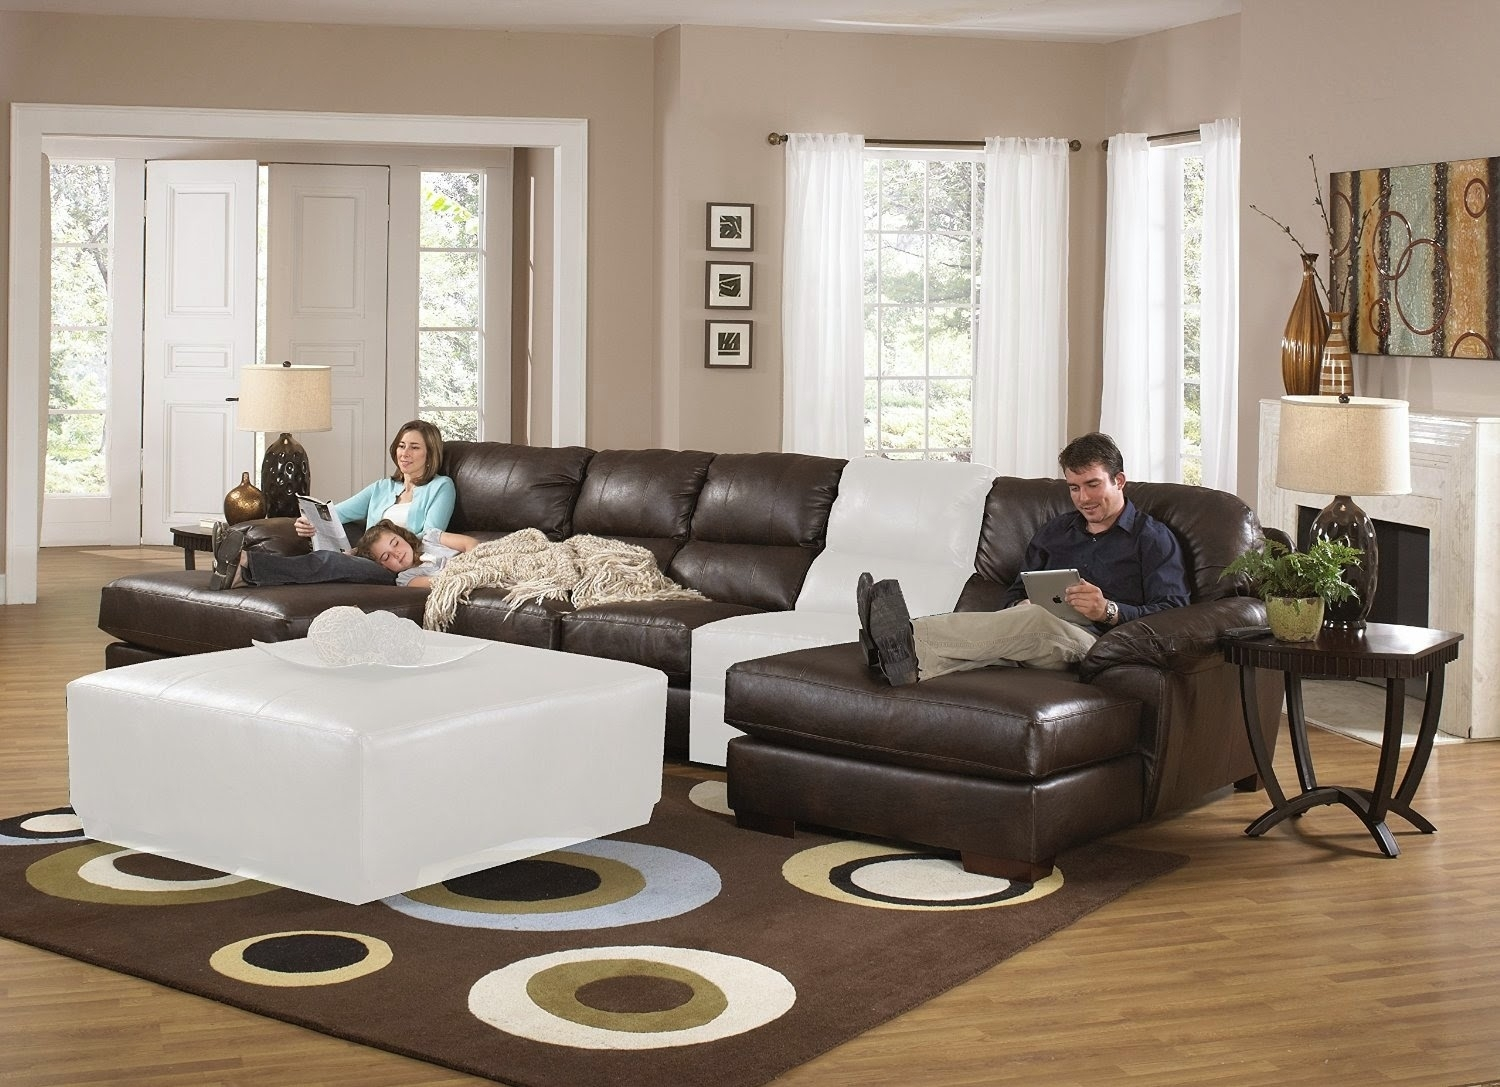 Best Reclining Sofa For The Money: Sleeper Sectional Sofa Within Jackson 6 Piece Power Reclining Sectionals With Sleeper (View 15 of 25)